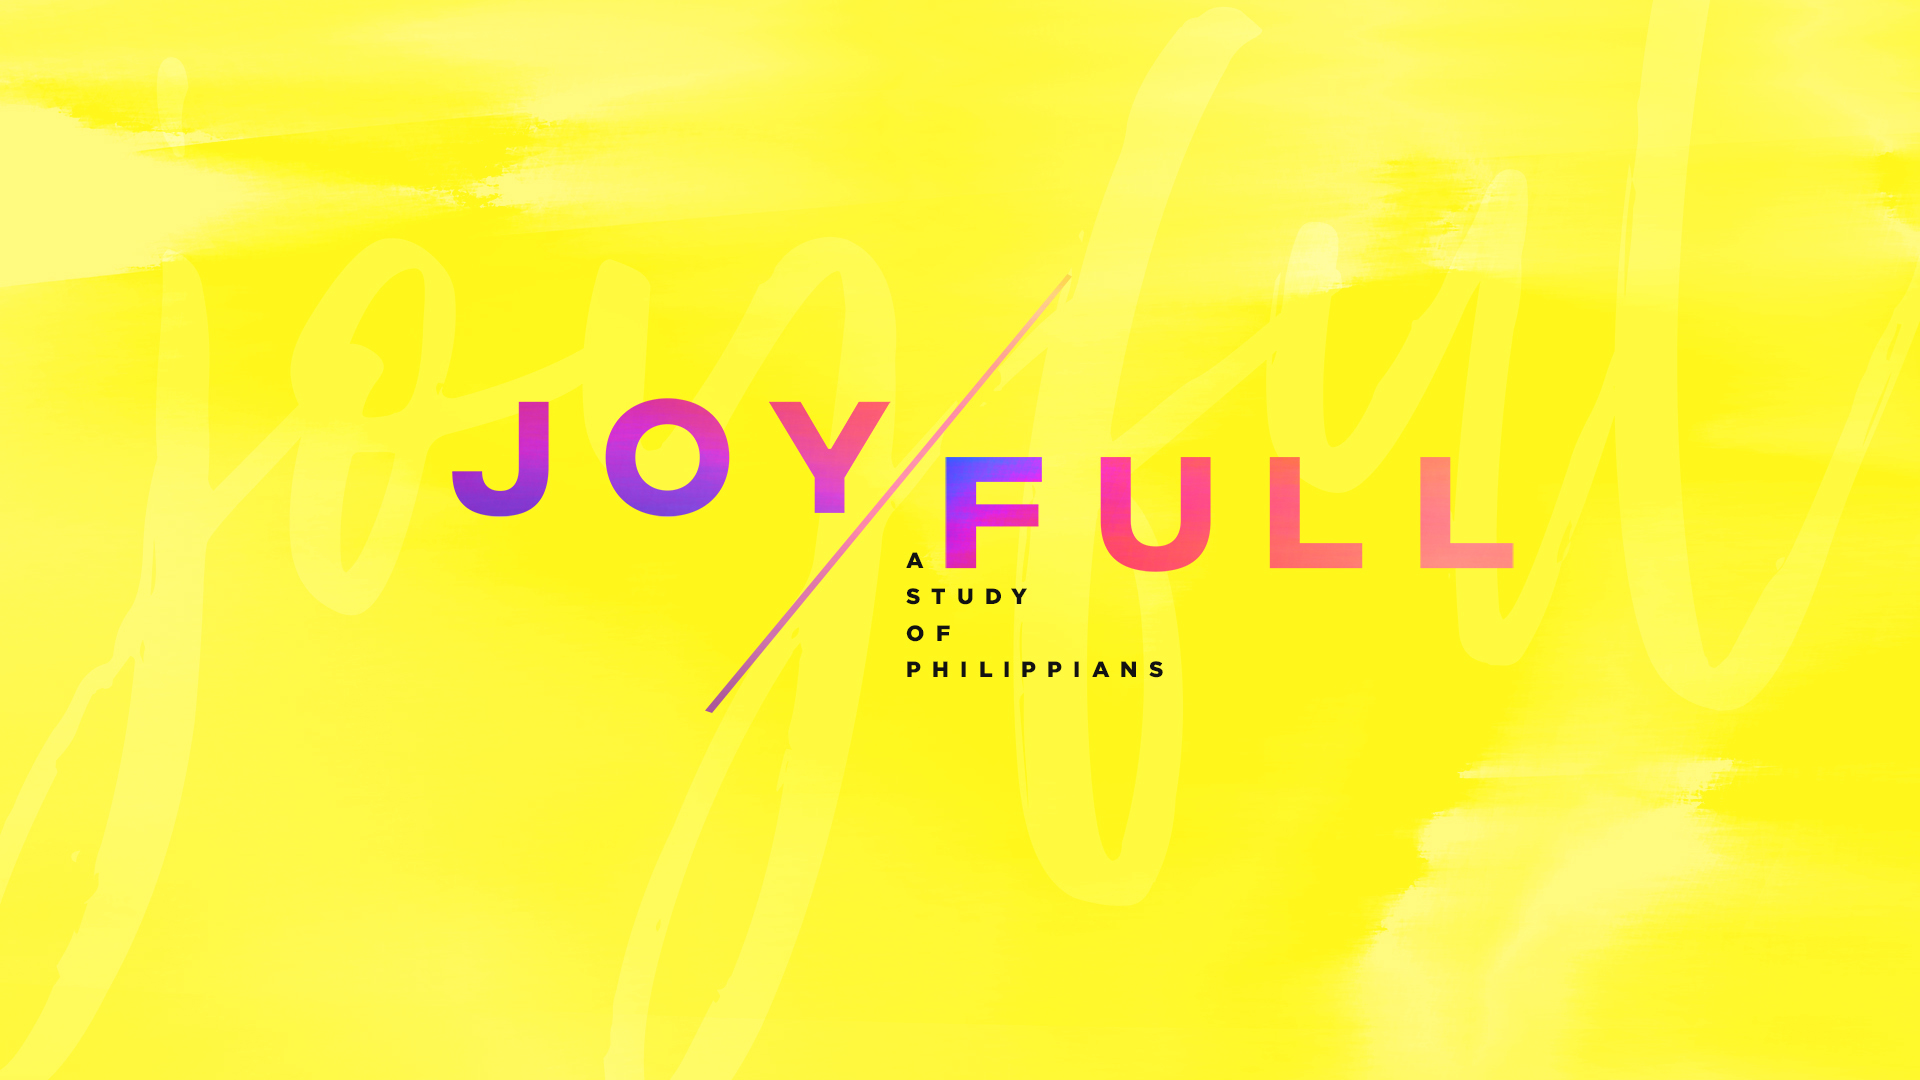 Joy/Full: a Study of Philippians